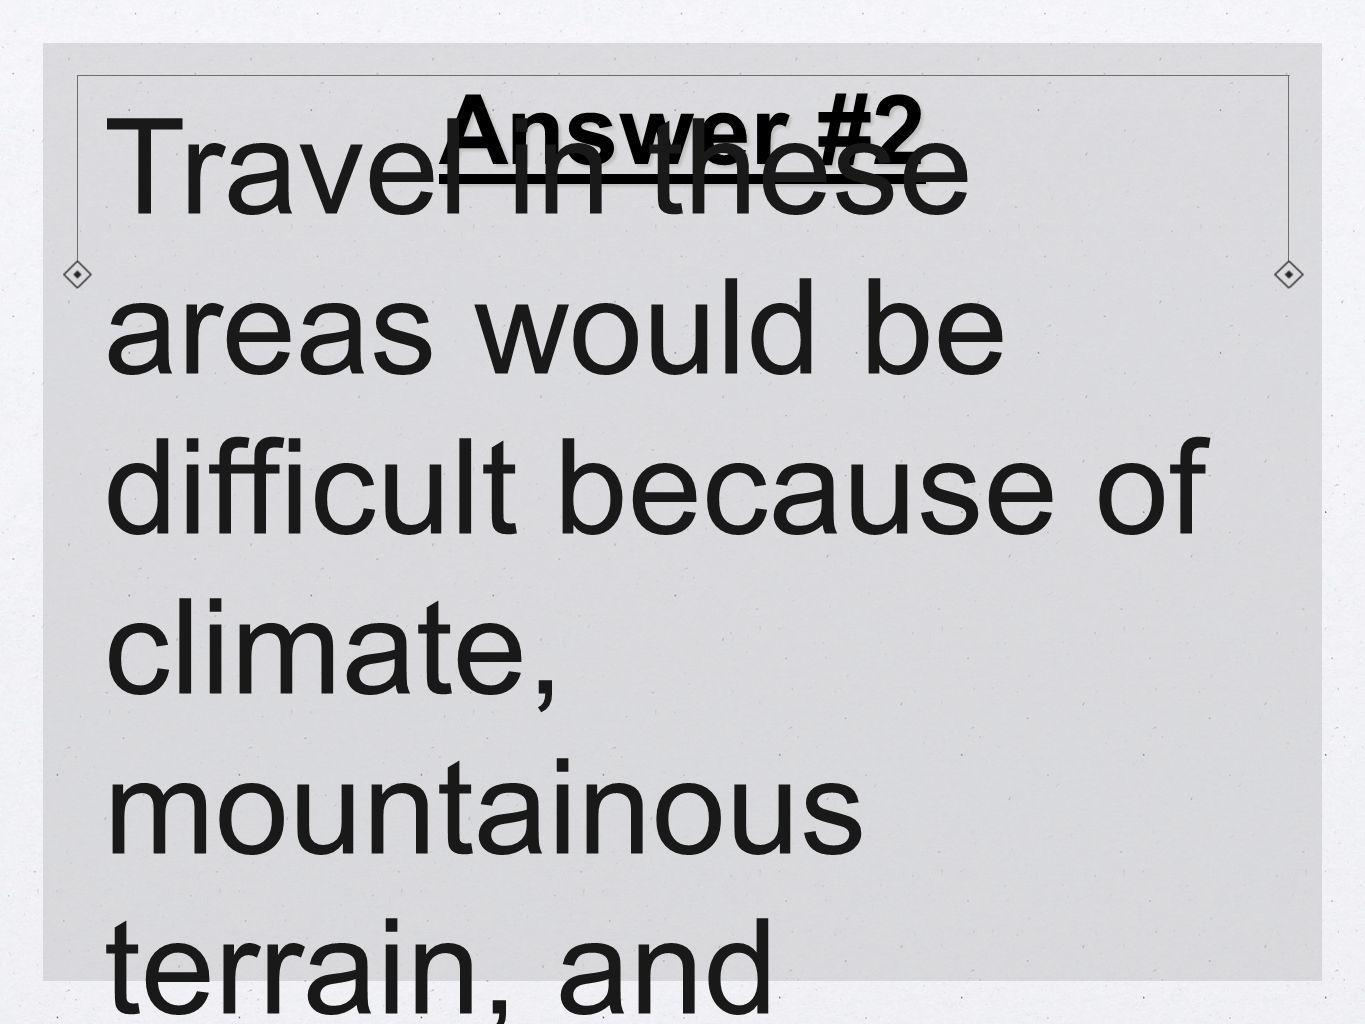 Answer #2 Travel in these areas would be difficult because of climate, mountainous terrain, and altitude.